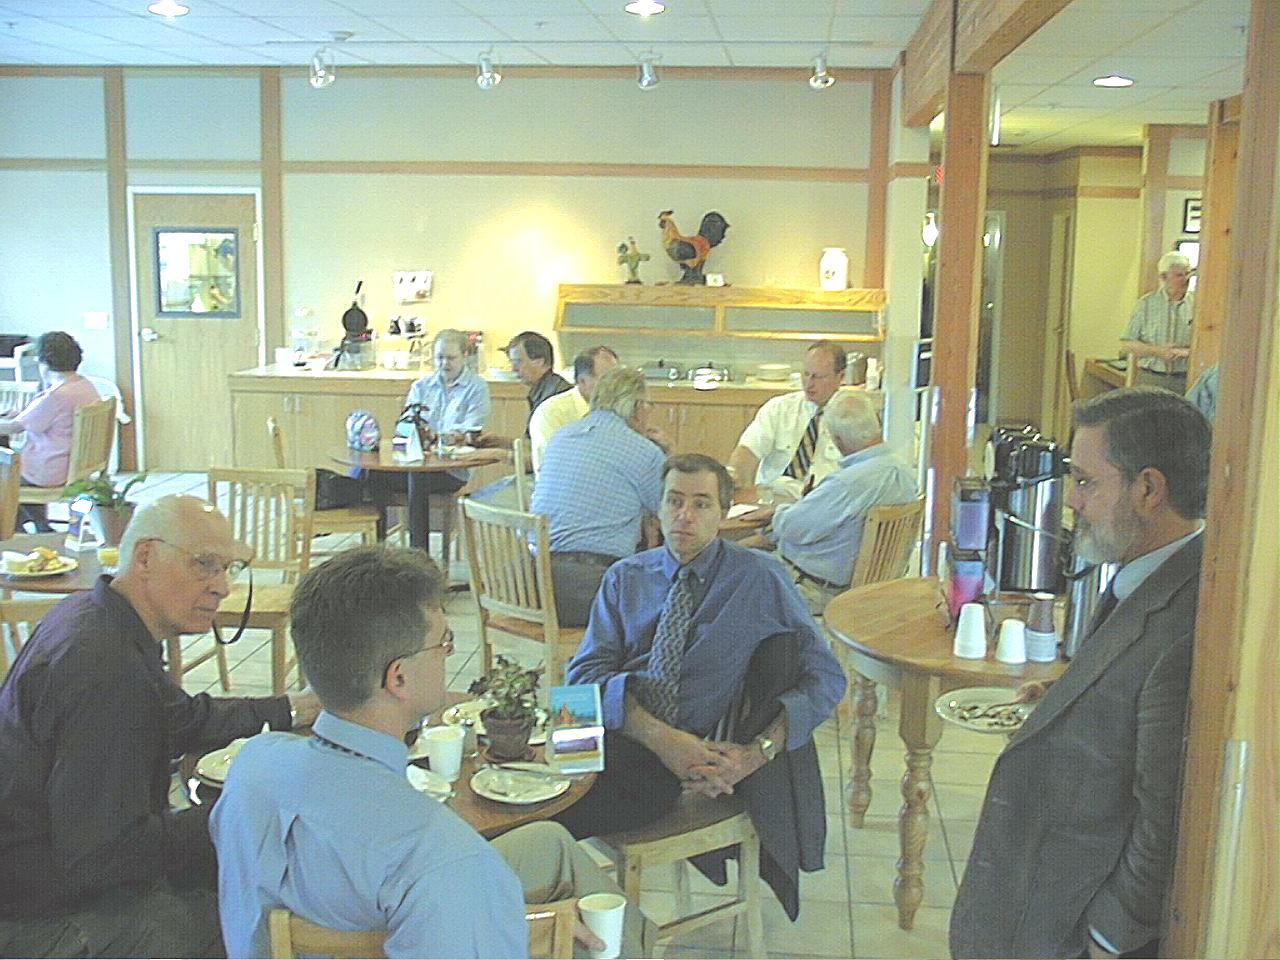 Image03.jpg - Fellowship during a break